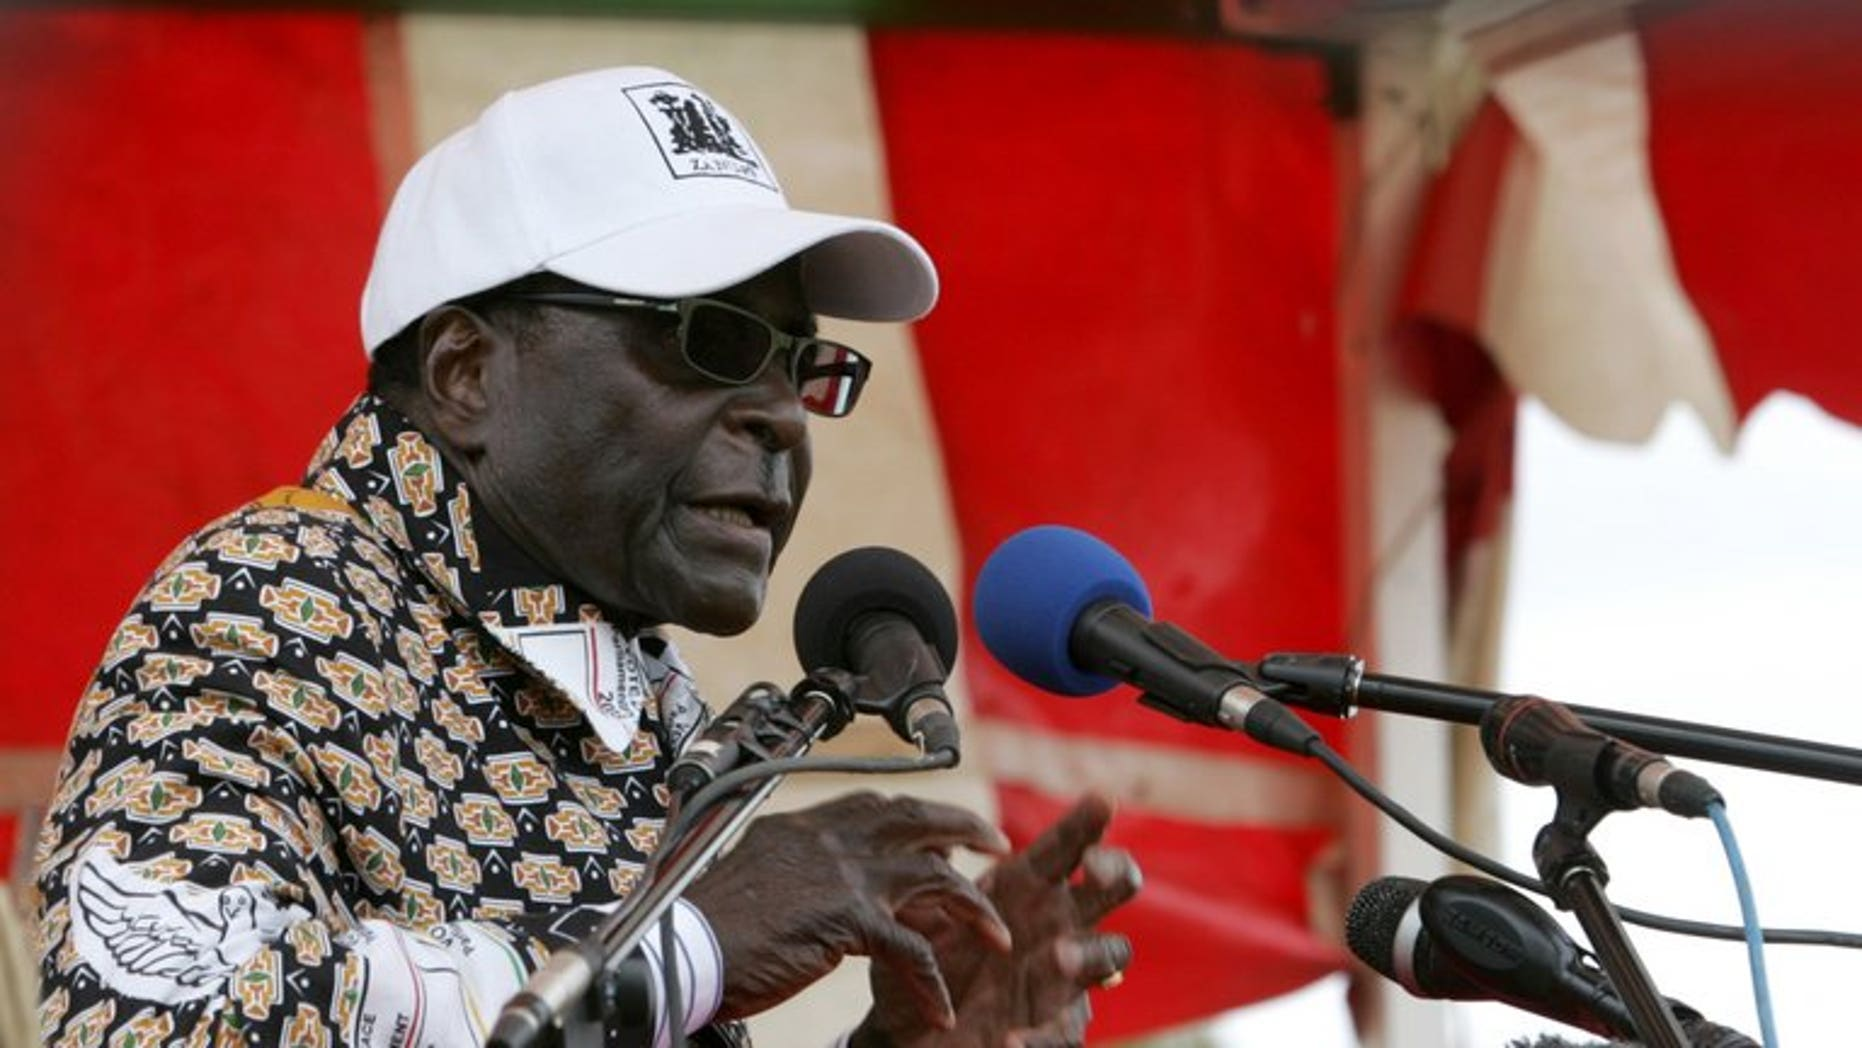 Zimbabwe President Robert Mugabe addresses an election rally in Mashonaland Central province on July 11 2013. Global rights watchdog Amnesty International has called on African blocs to ensure that Zimbabwe's upcoming elections are not marred by violence similar to the 2008 vote.